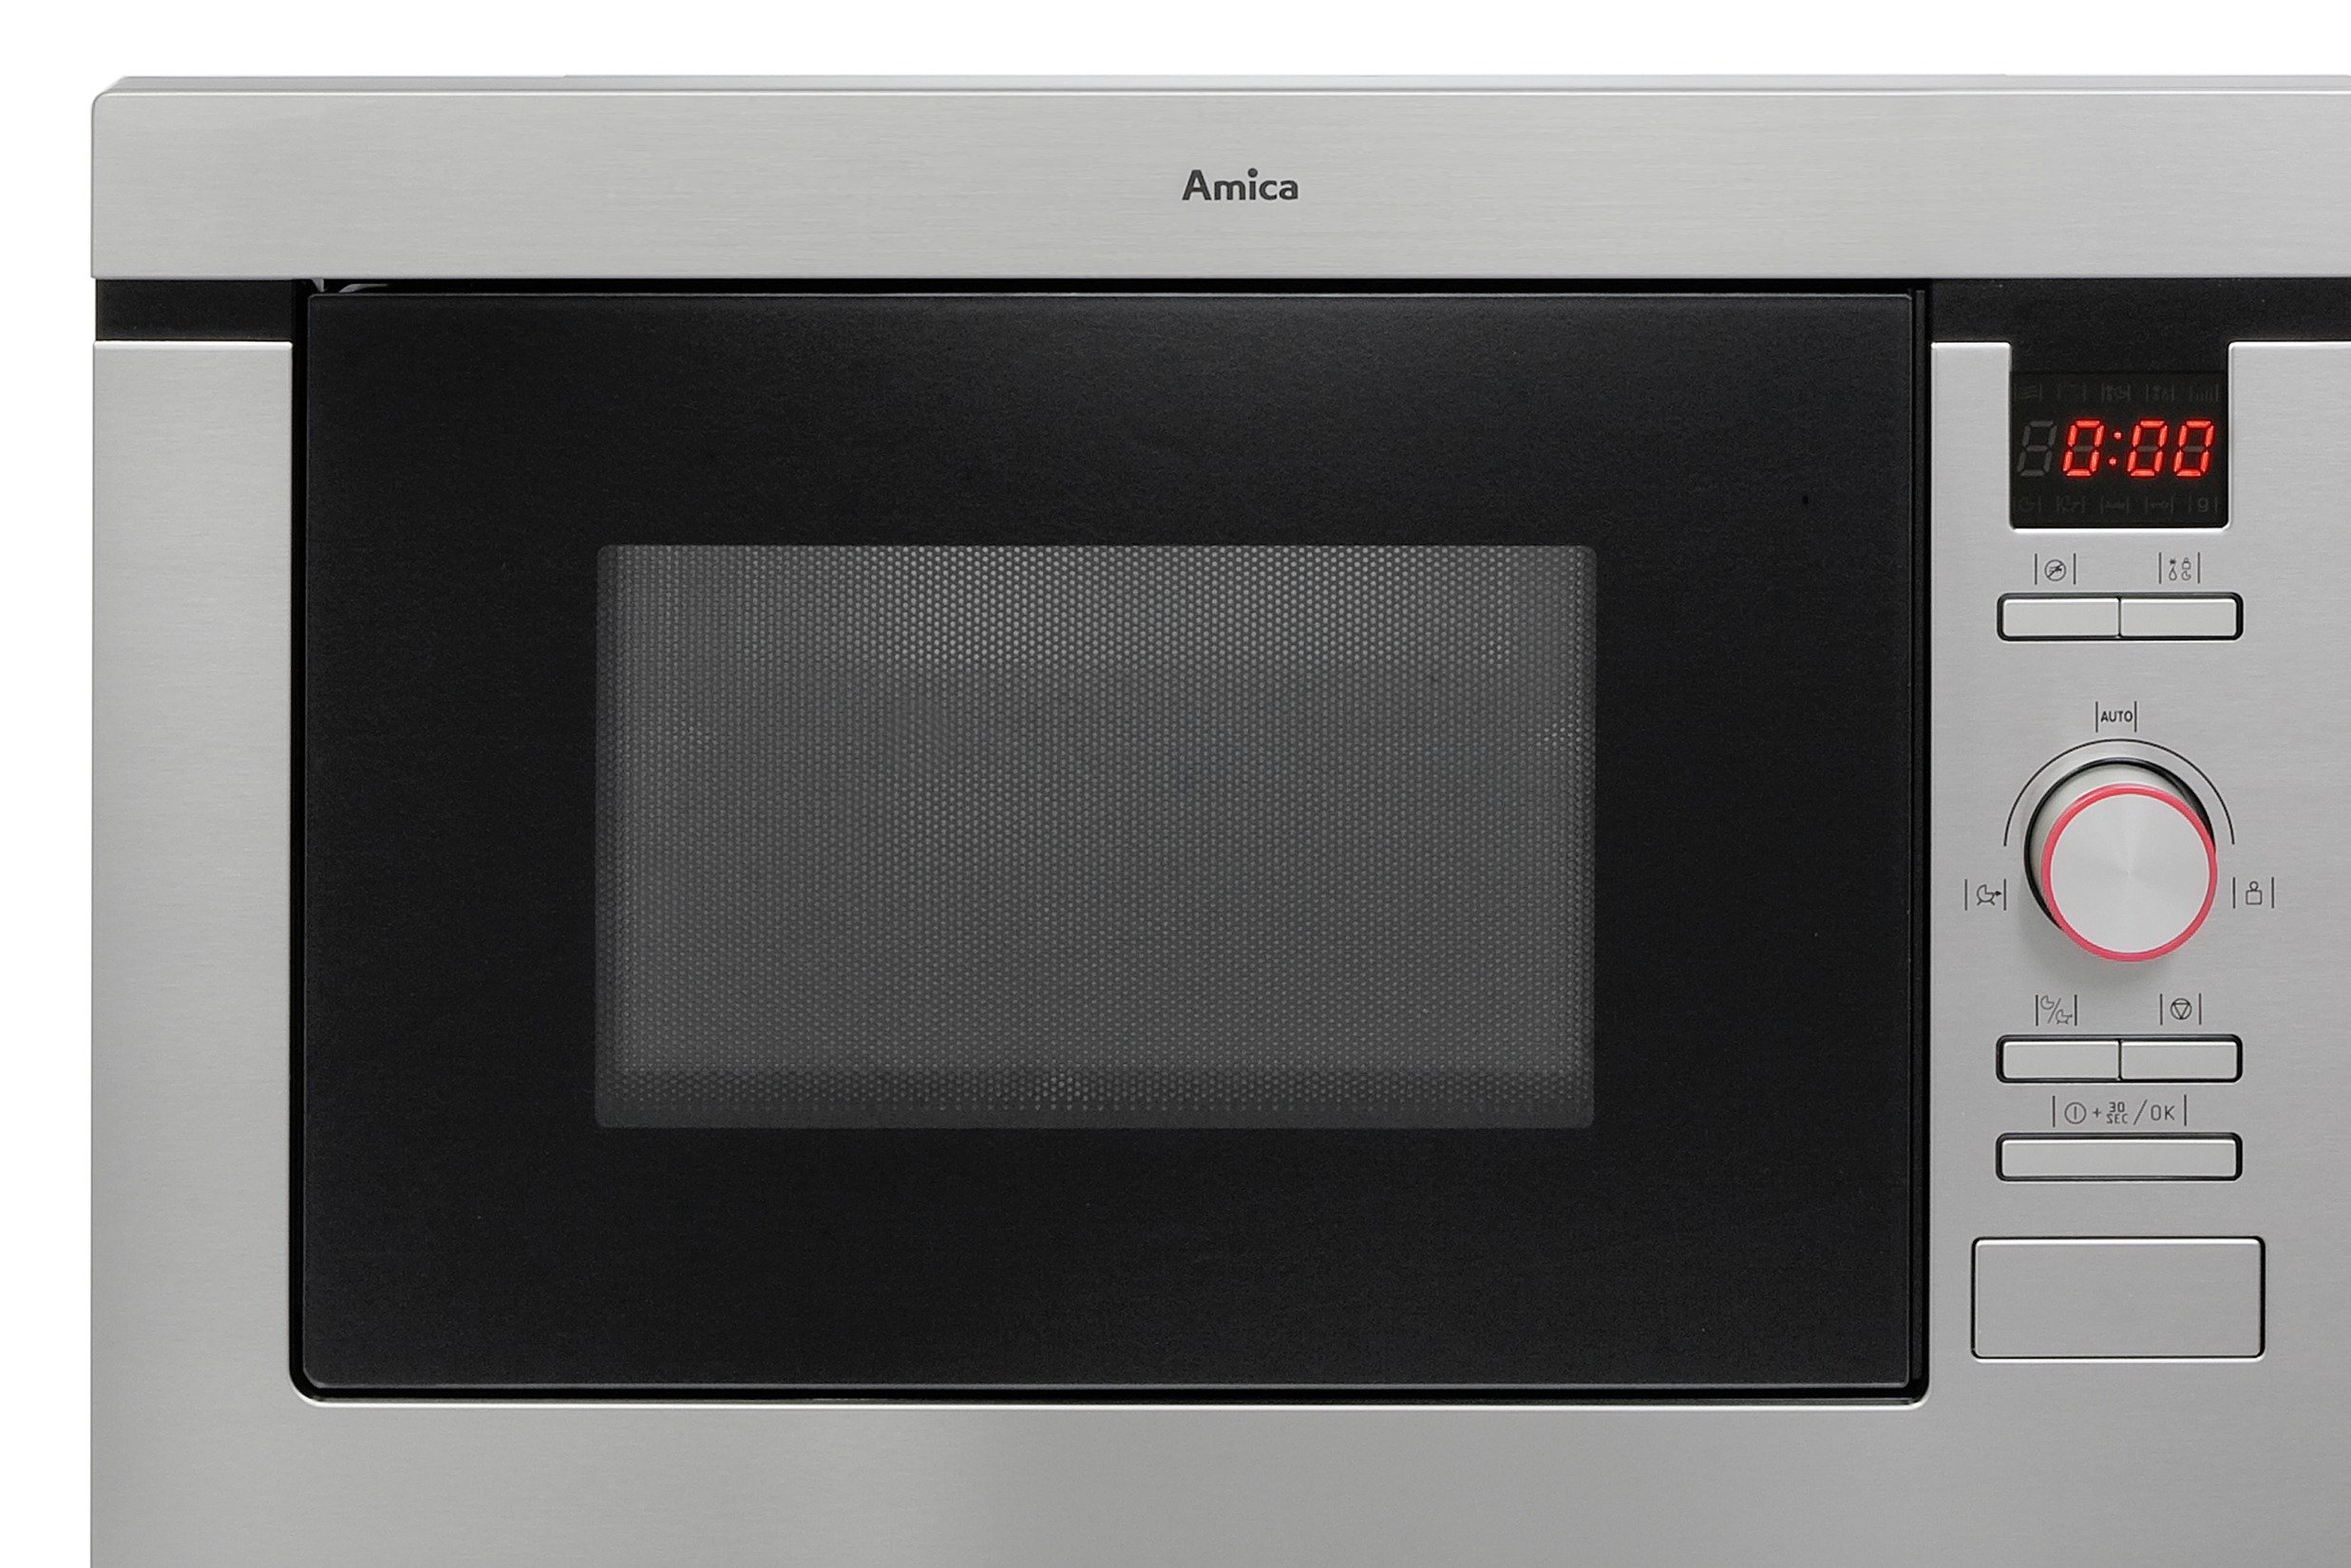 Amica AMM25BI 1000W Built-In Microwave - Stainless Steel.